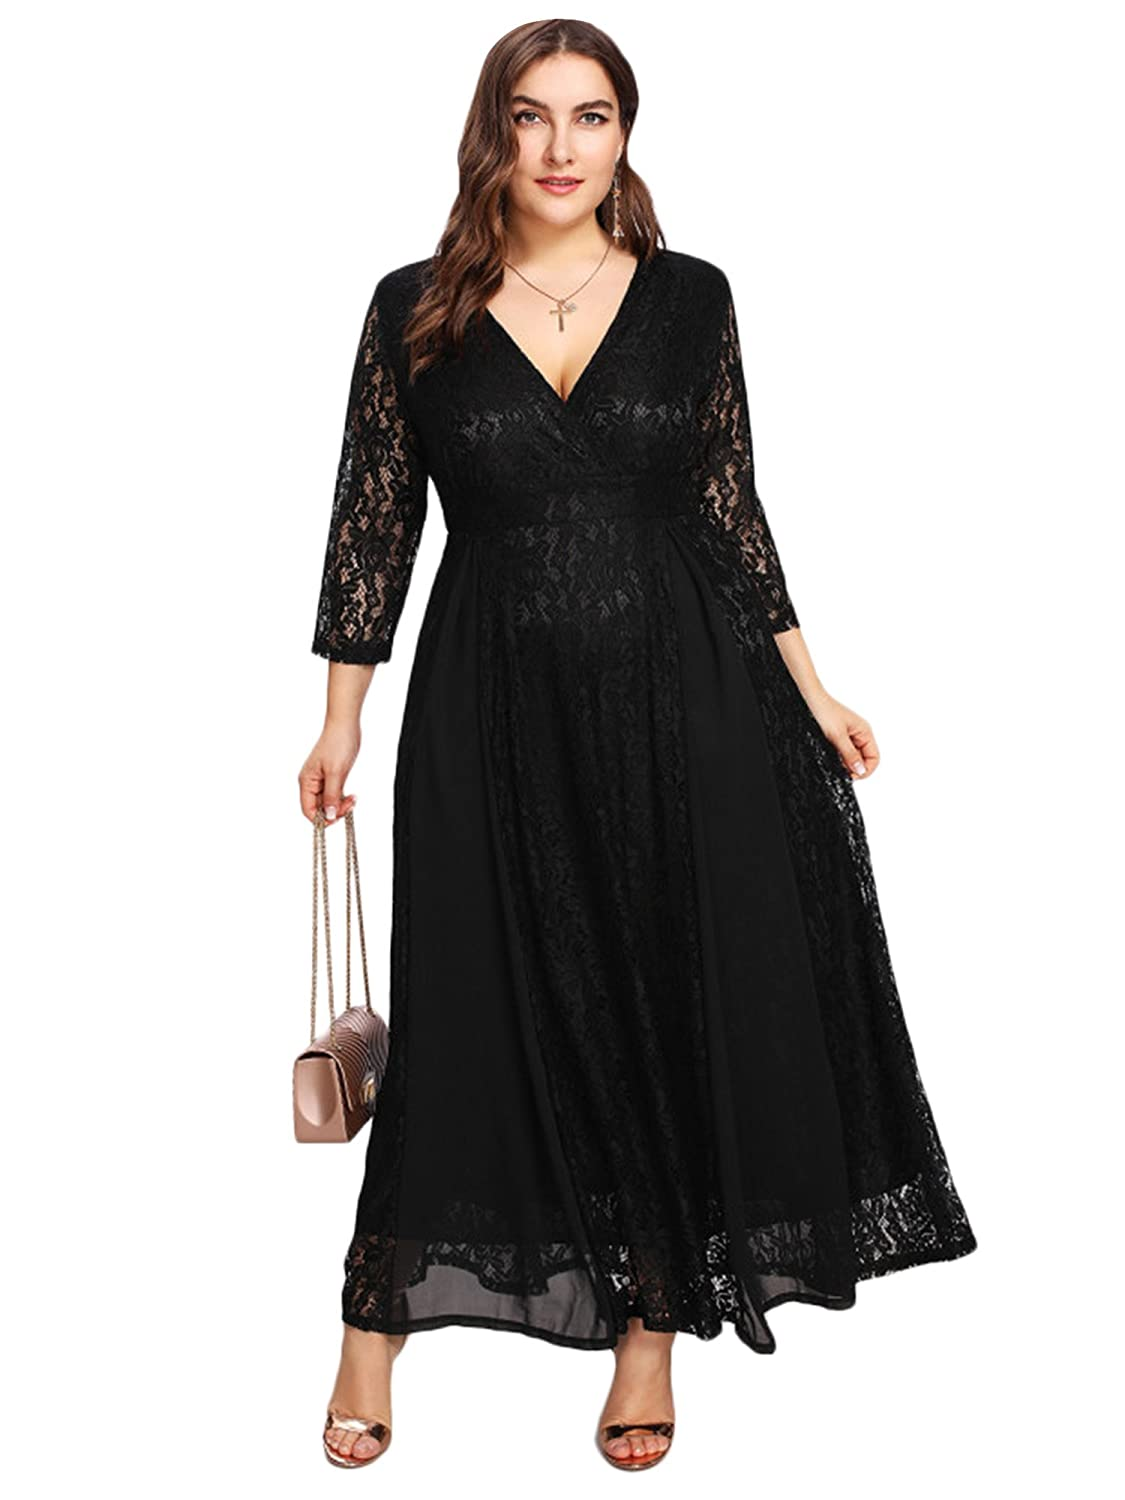 ESPRLIA Women\'s Plus Size High Waist Lace Overlay Maxi Evening Dresses